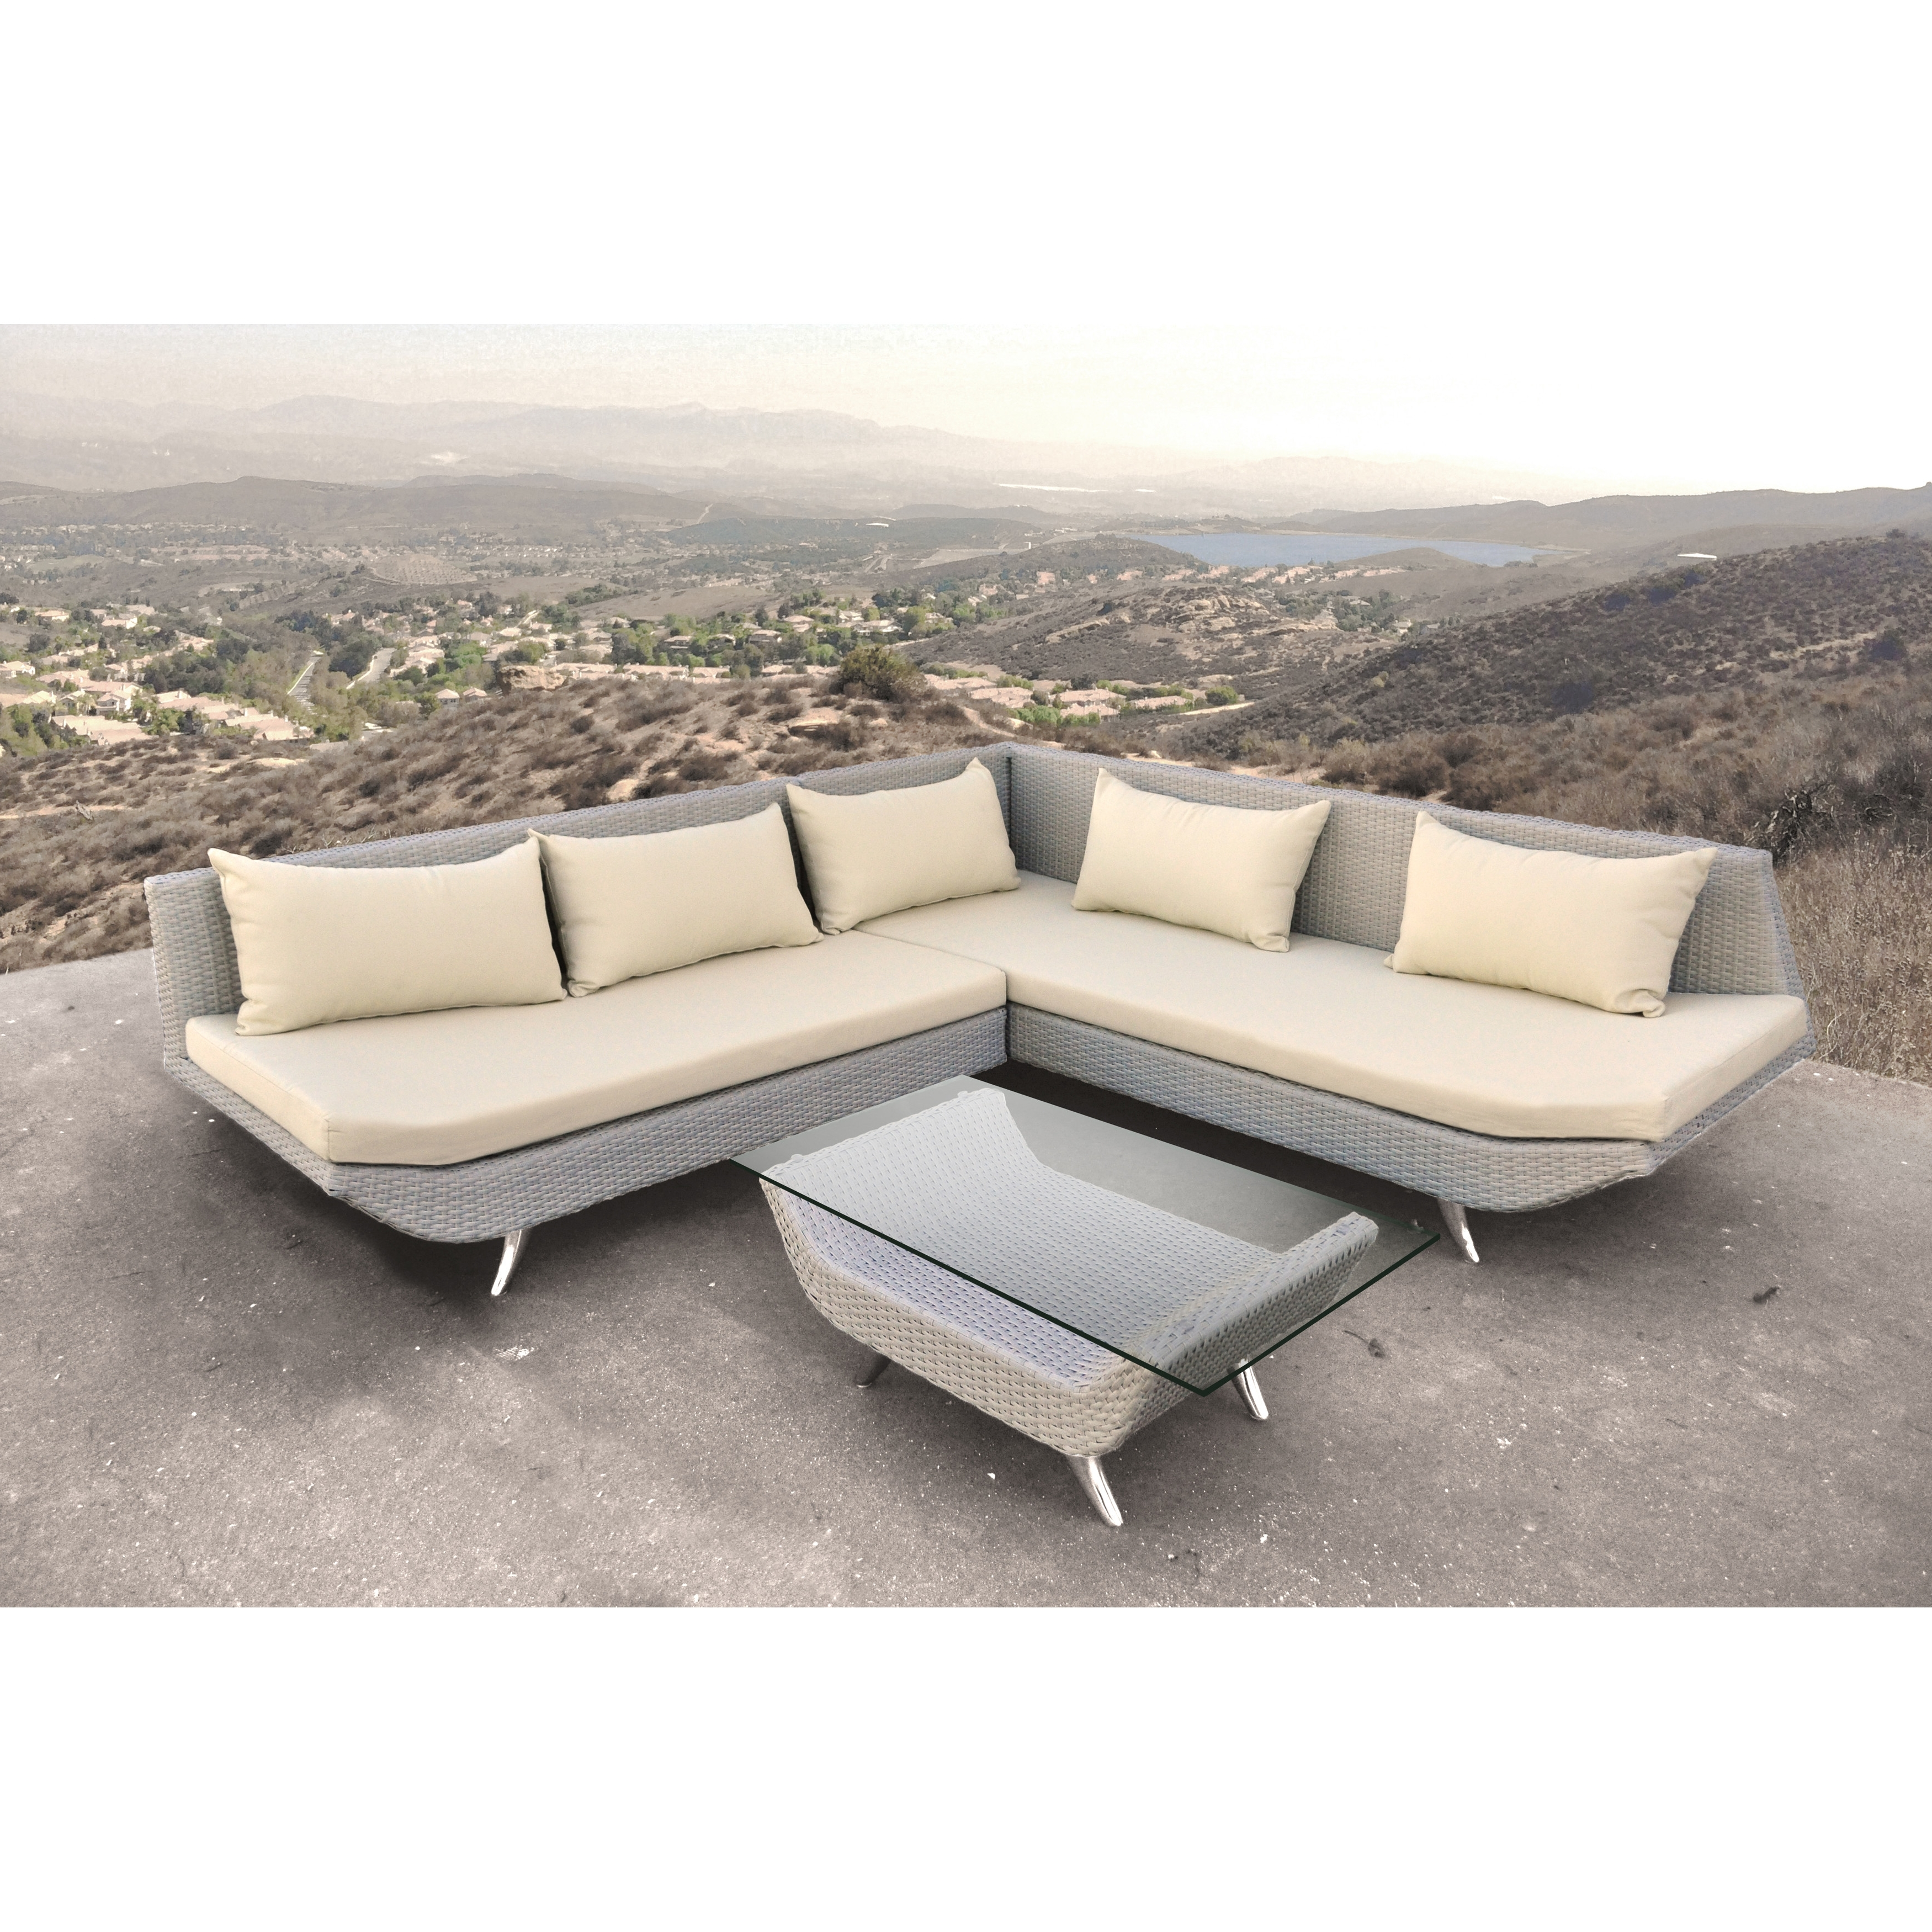 Ottawa Sectional Sofas Within 2018 Sectional Sofa : Discount Sectionals Deep Seat Leather Sectional (View 11 of 20)